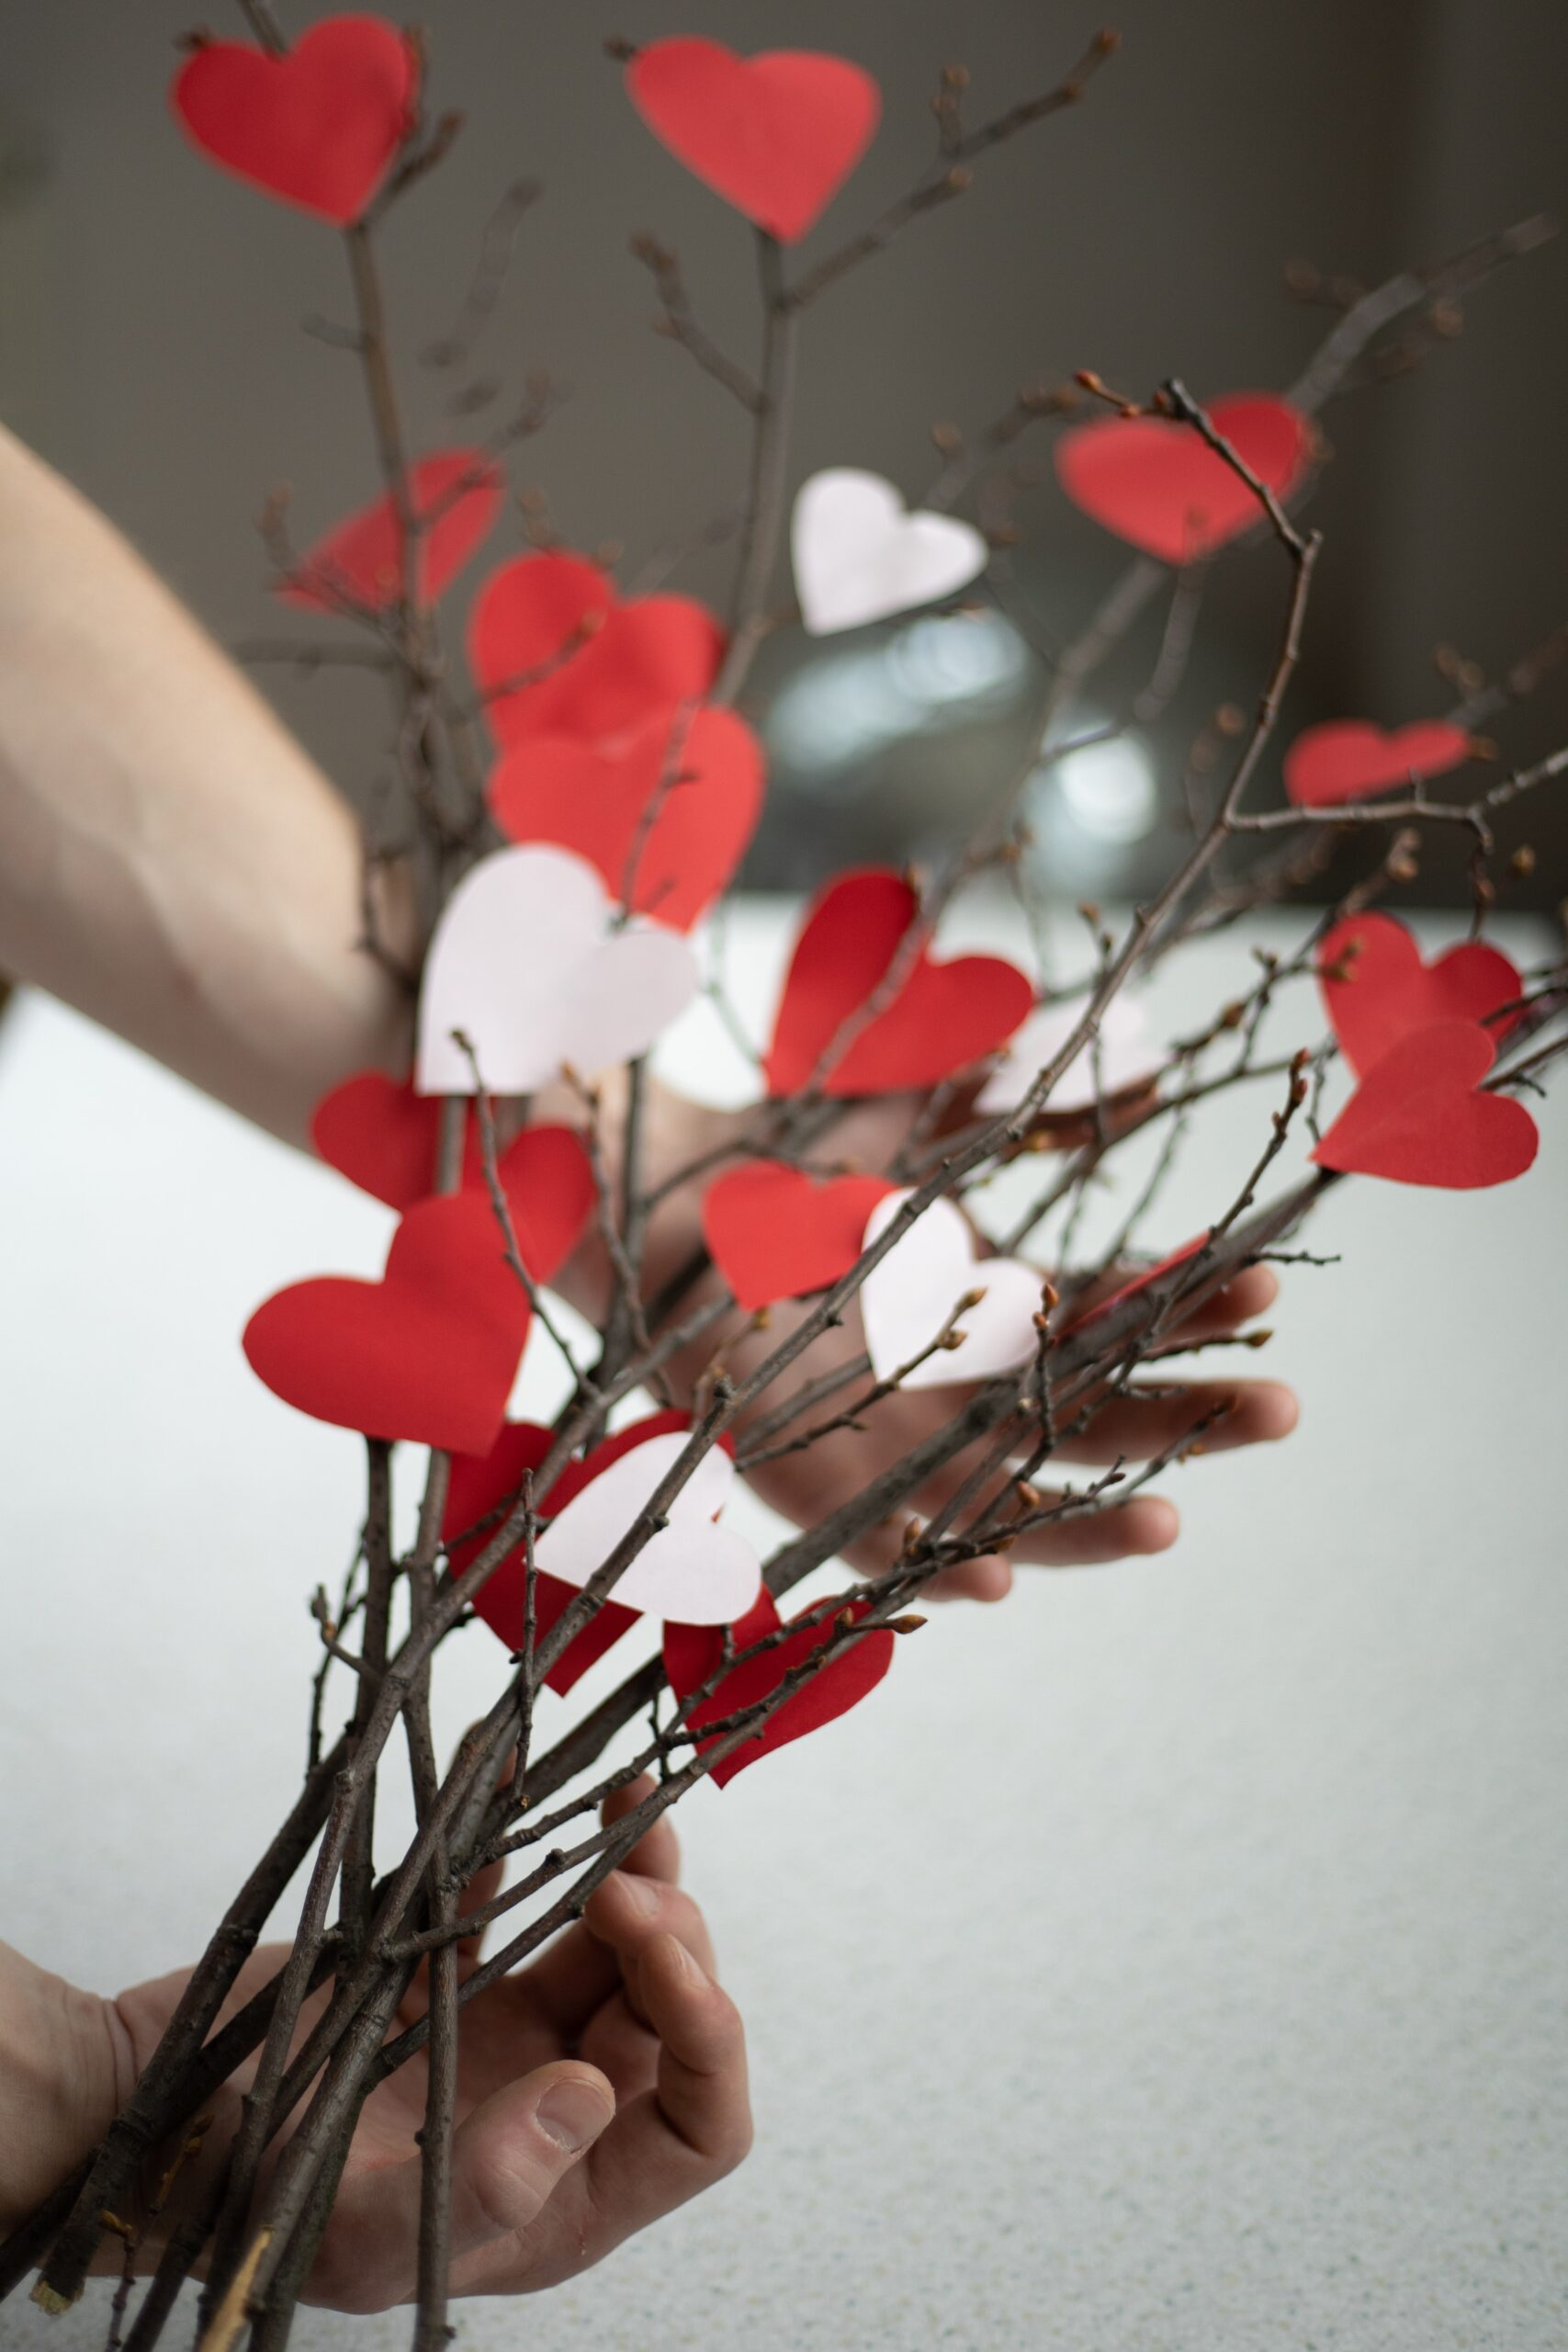 in the northern hemisphere, hearts inform us that spring will be here soon and de-cluttering and removal is in the air